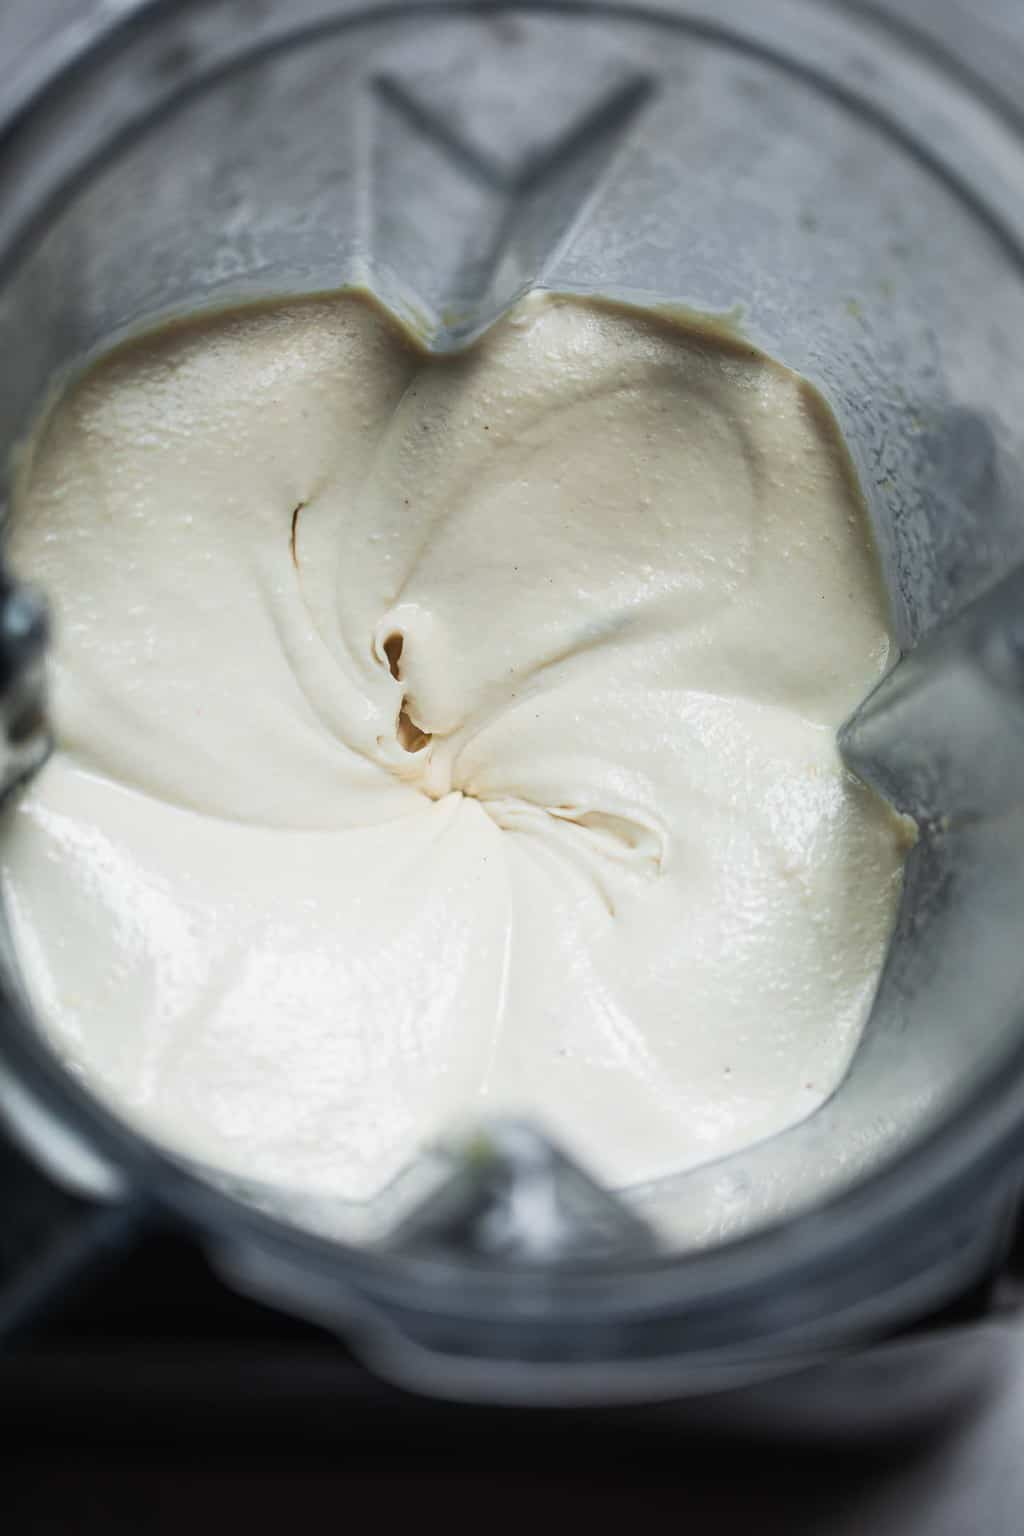 Sour cream in a food processor